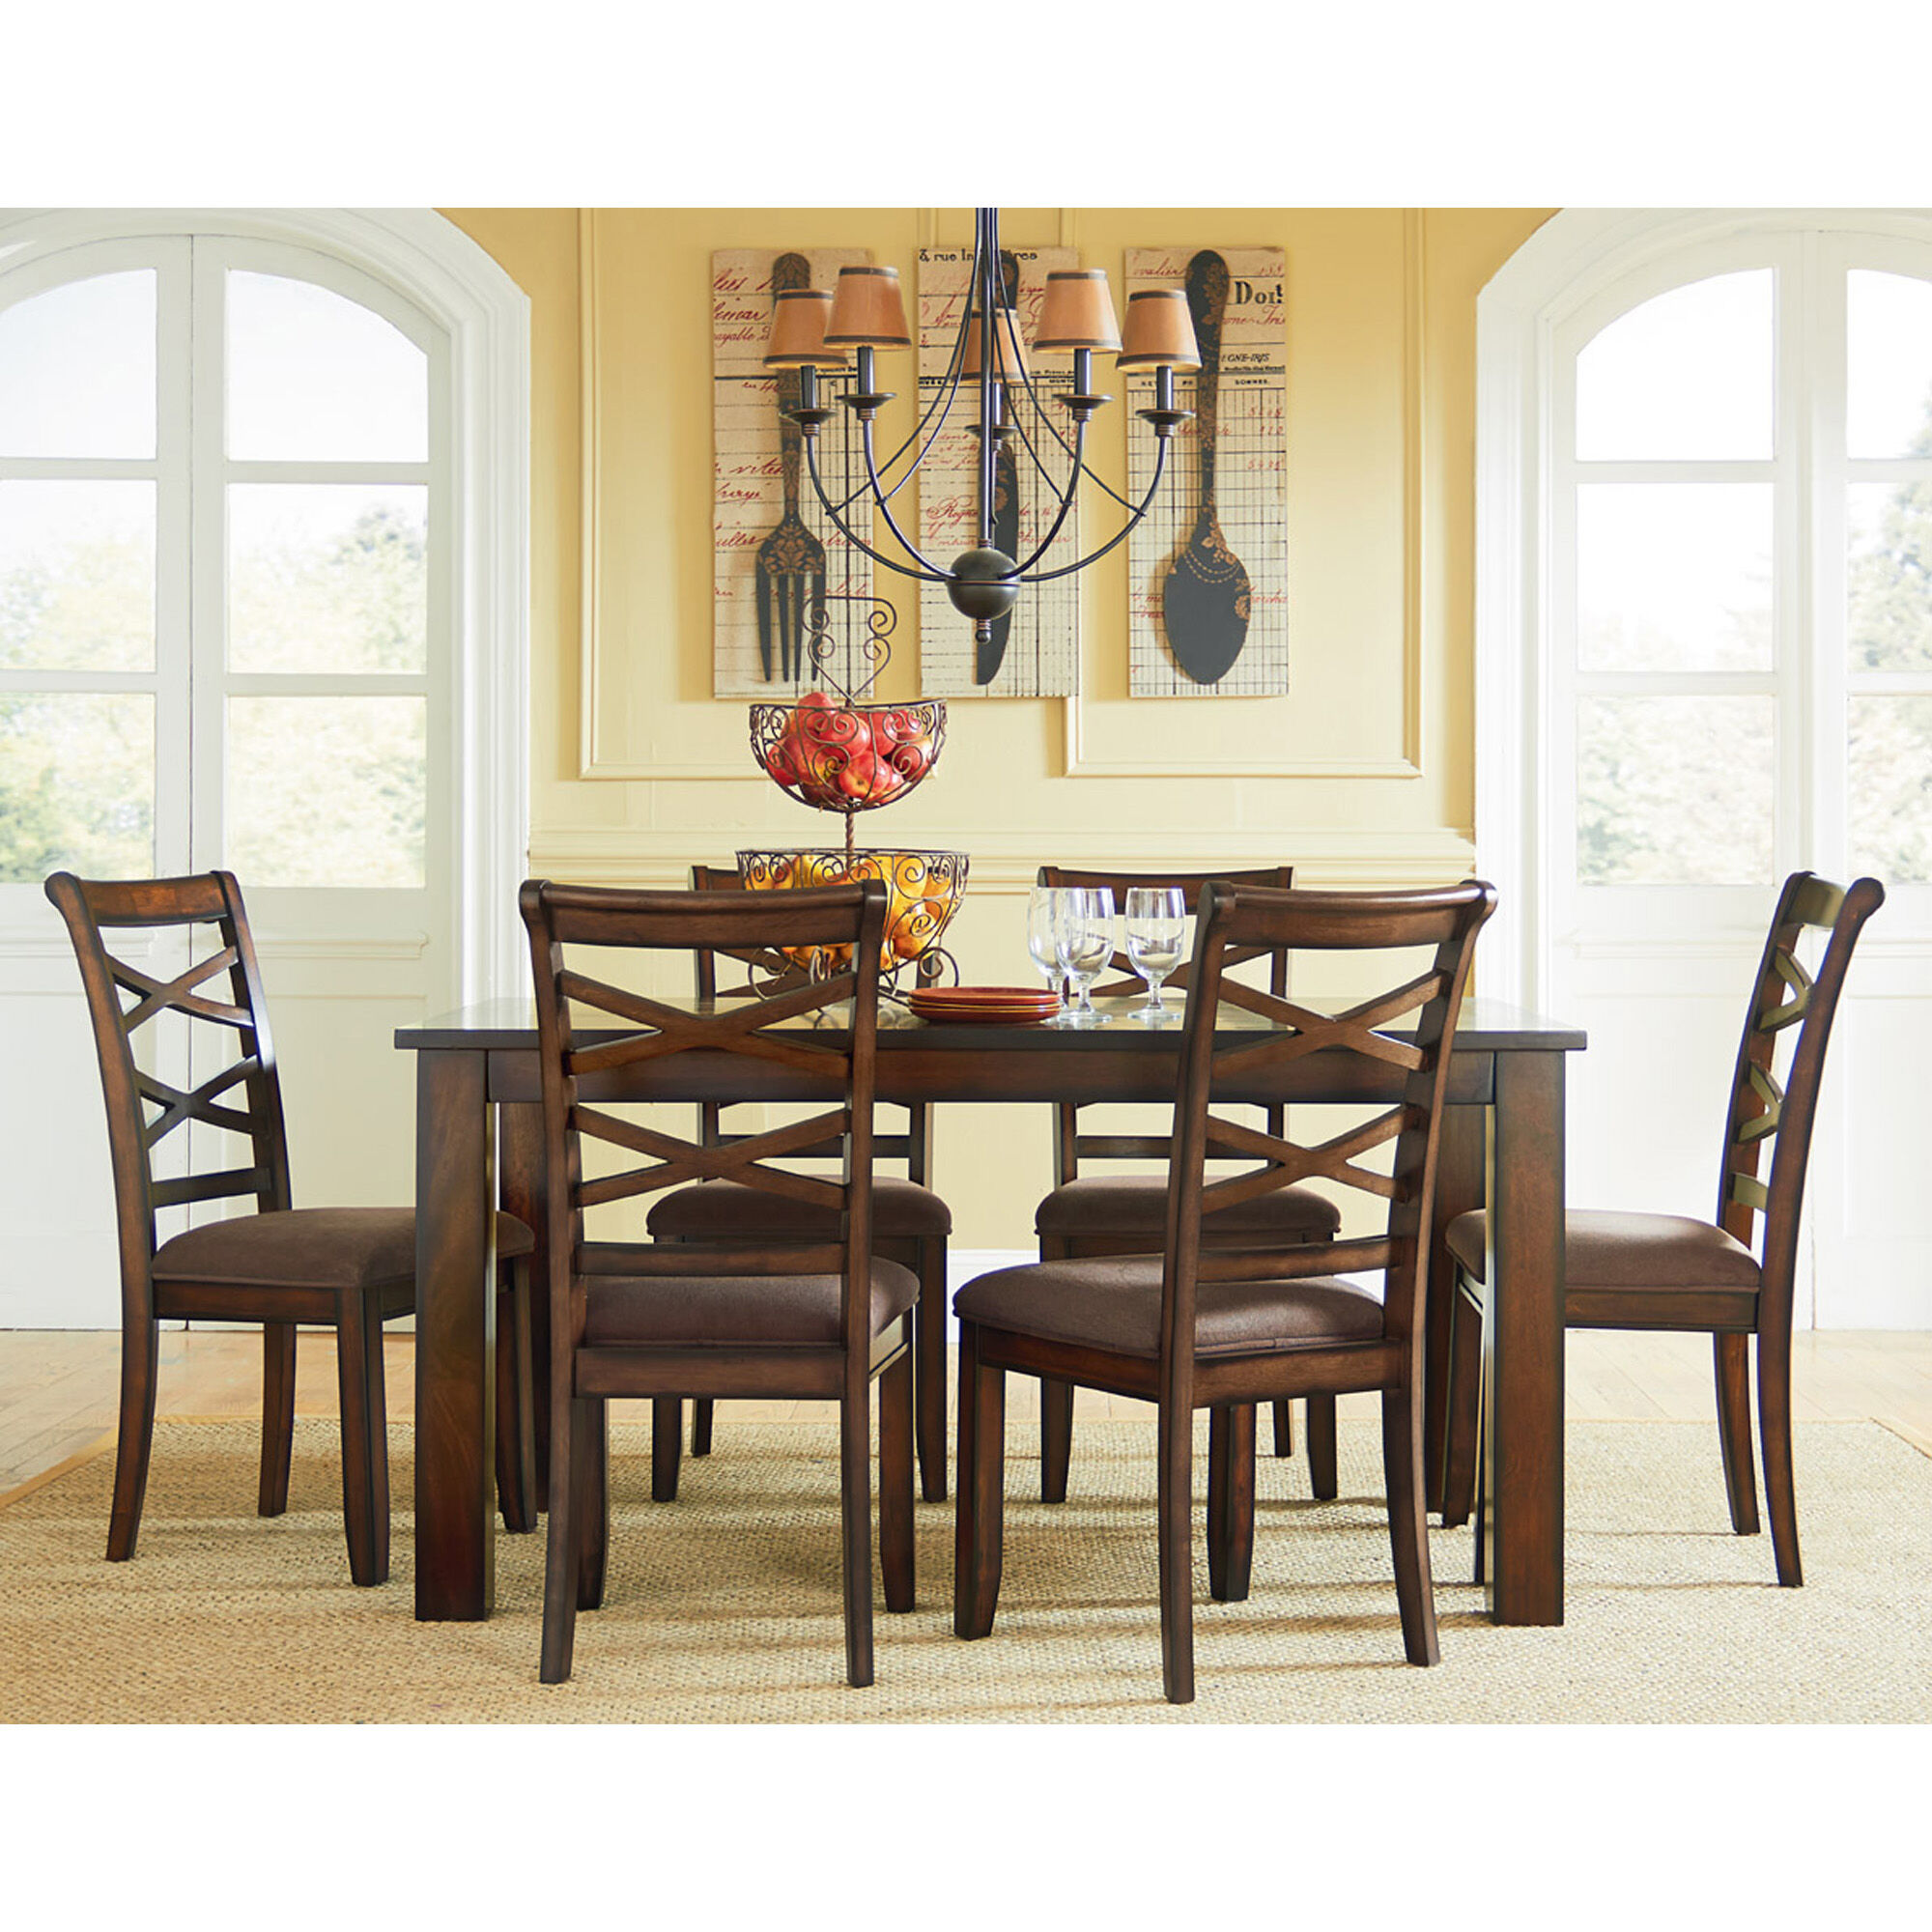 7 Piece Redondo Dining Room Collection Rent to